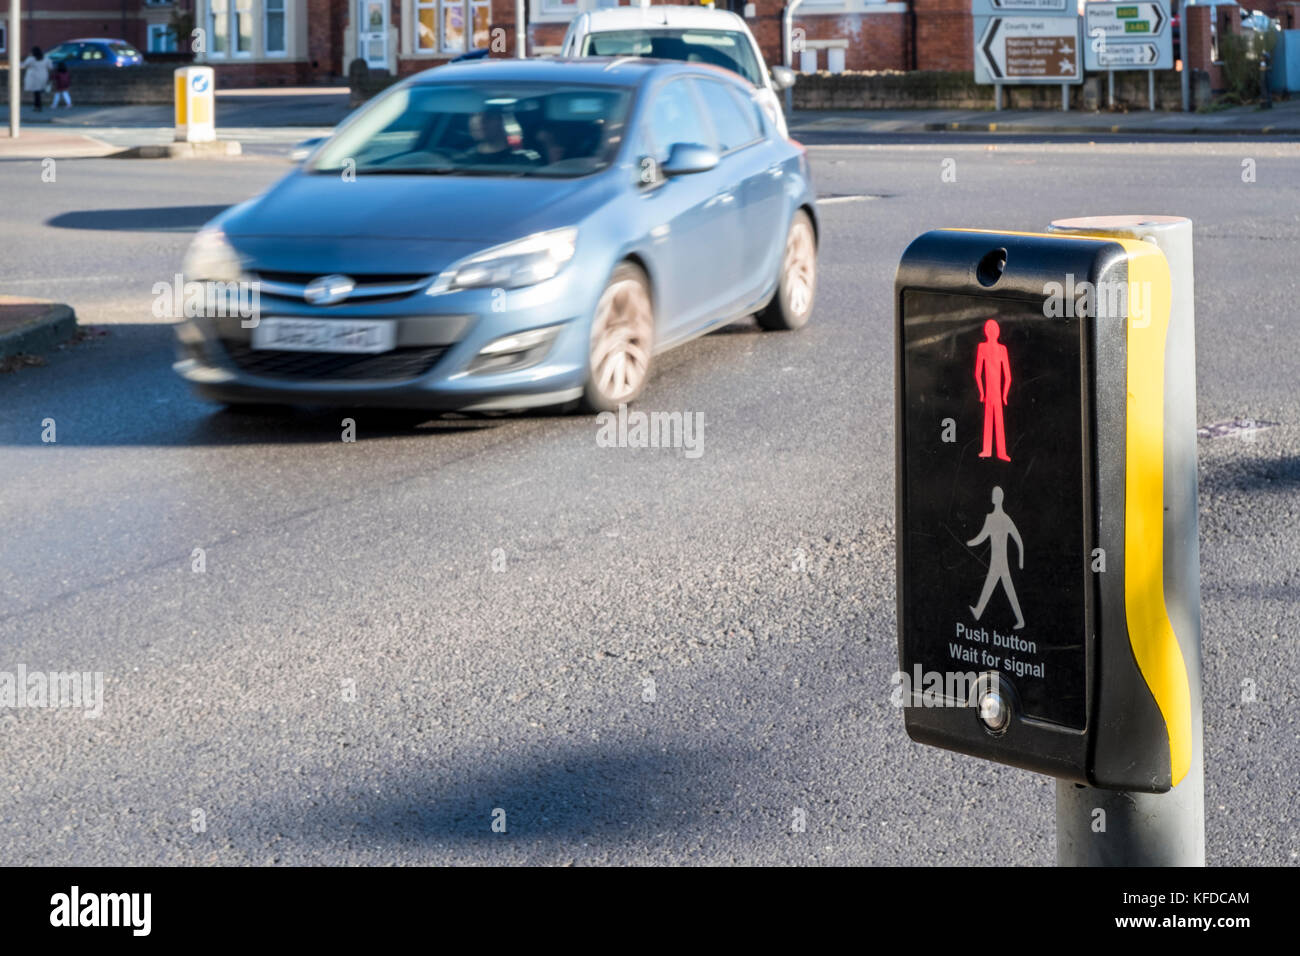 'scrambled' pedestrian crossings at signal controlled Determining where and how to mark uncontrolled crosswalks   pedestrian  traffic control devices (signs, markings, and signals) x collision  pedestrian  scramble – in beverly hills, ca, daytime pedestrian activity is very high in the.